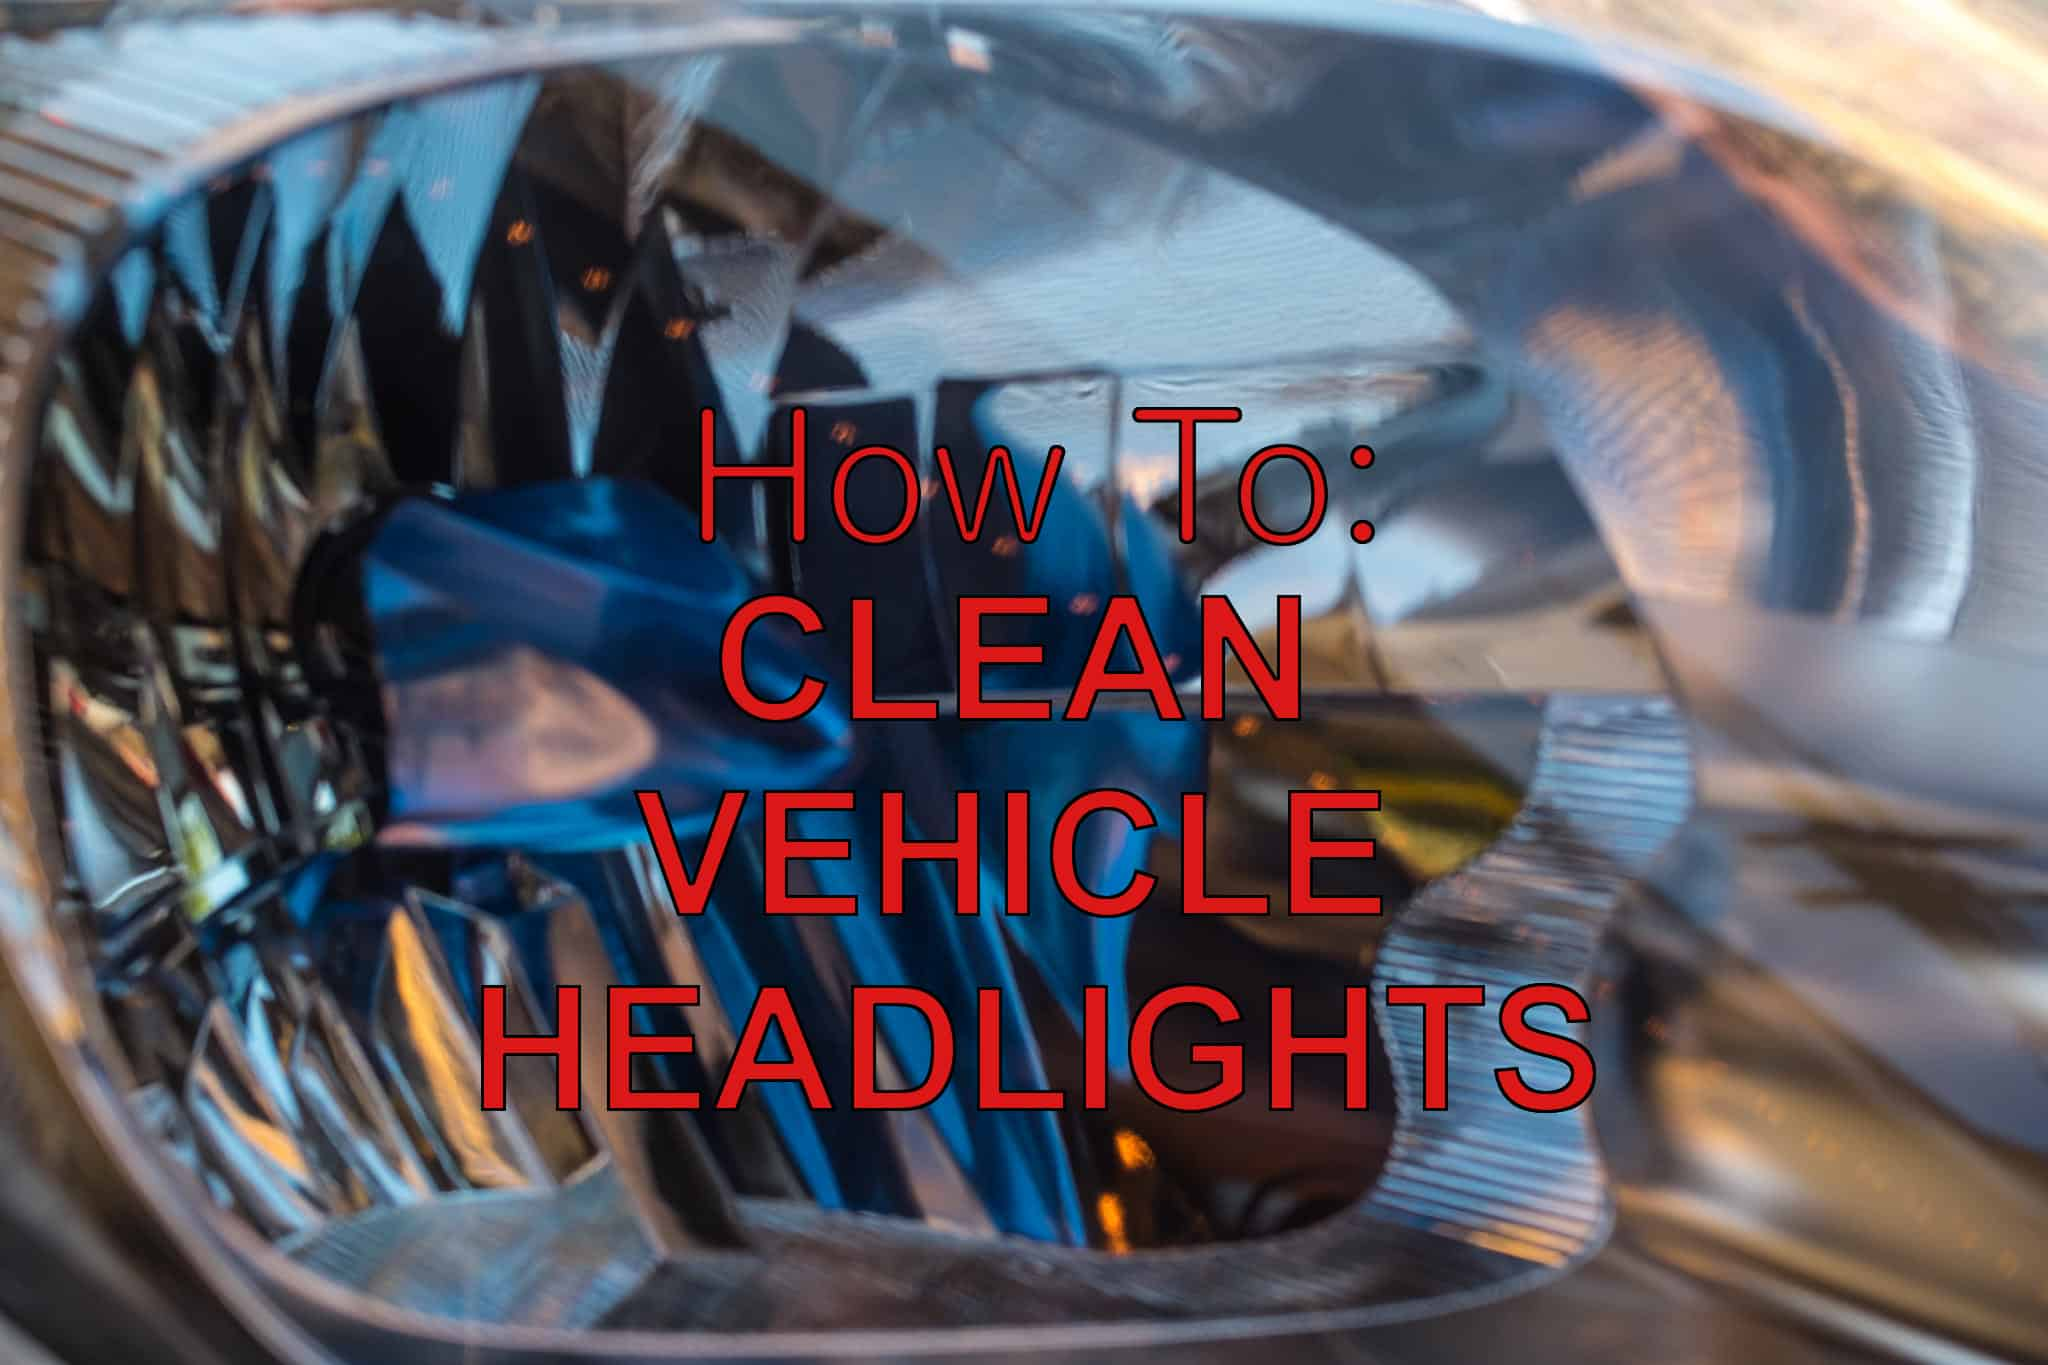 How to Clean Vehicle Headlights – Make Your Headlights Look Brand New